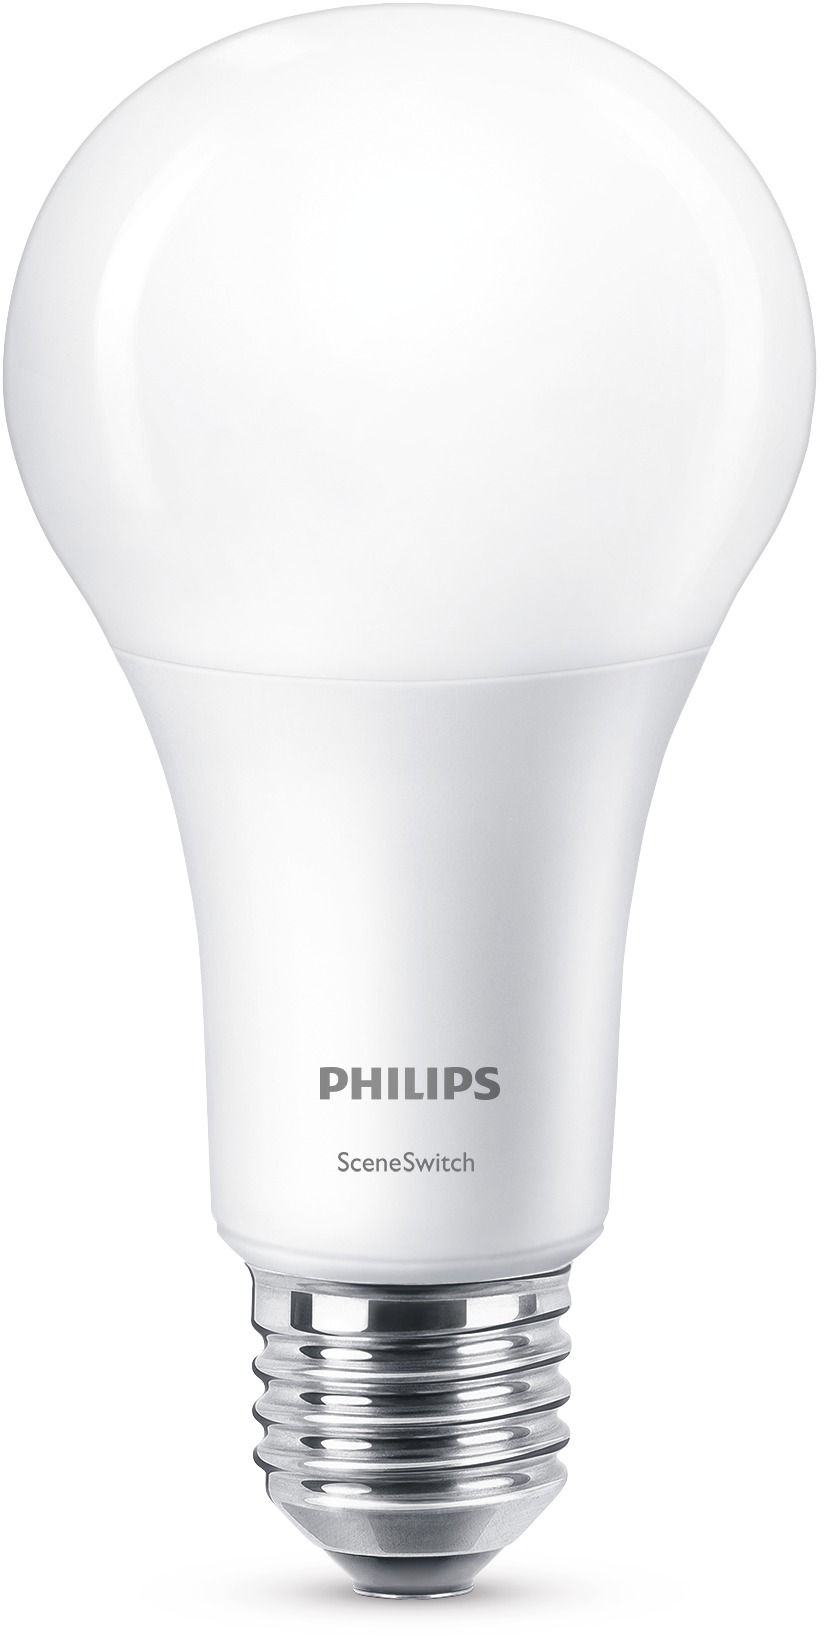 LED-lamppu Philips SceneSwitch 14W (100W) A67 E27